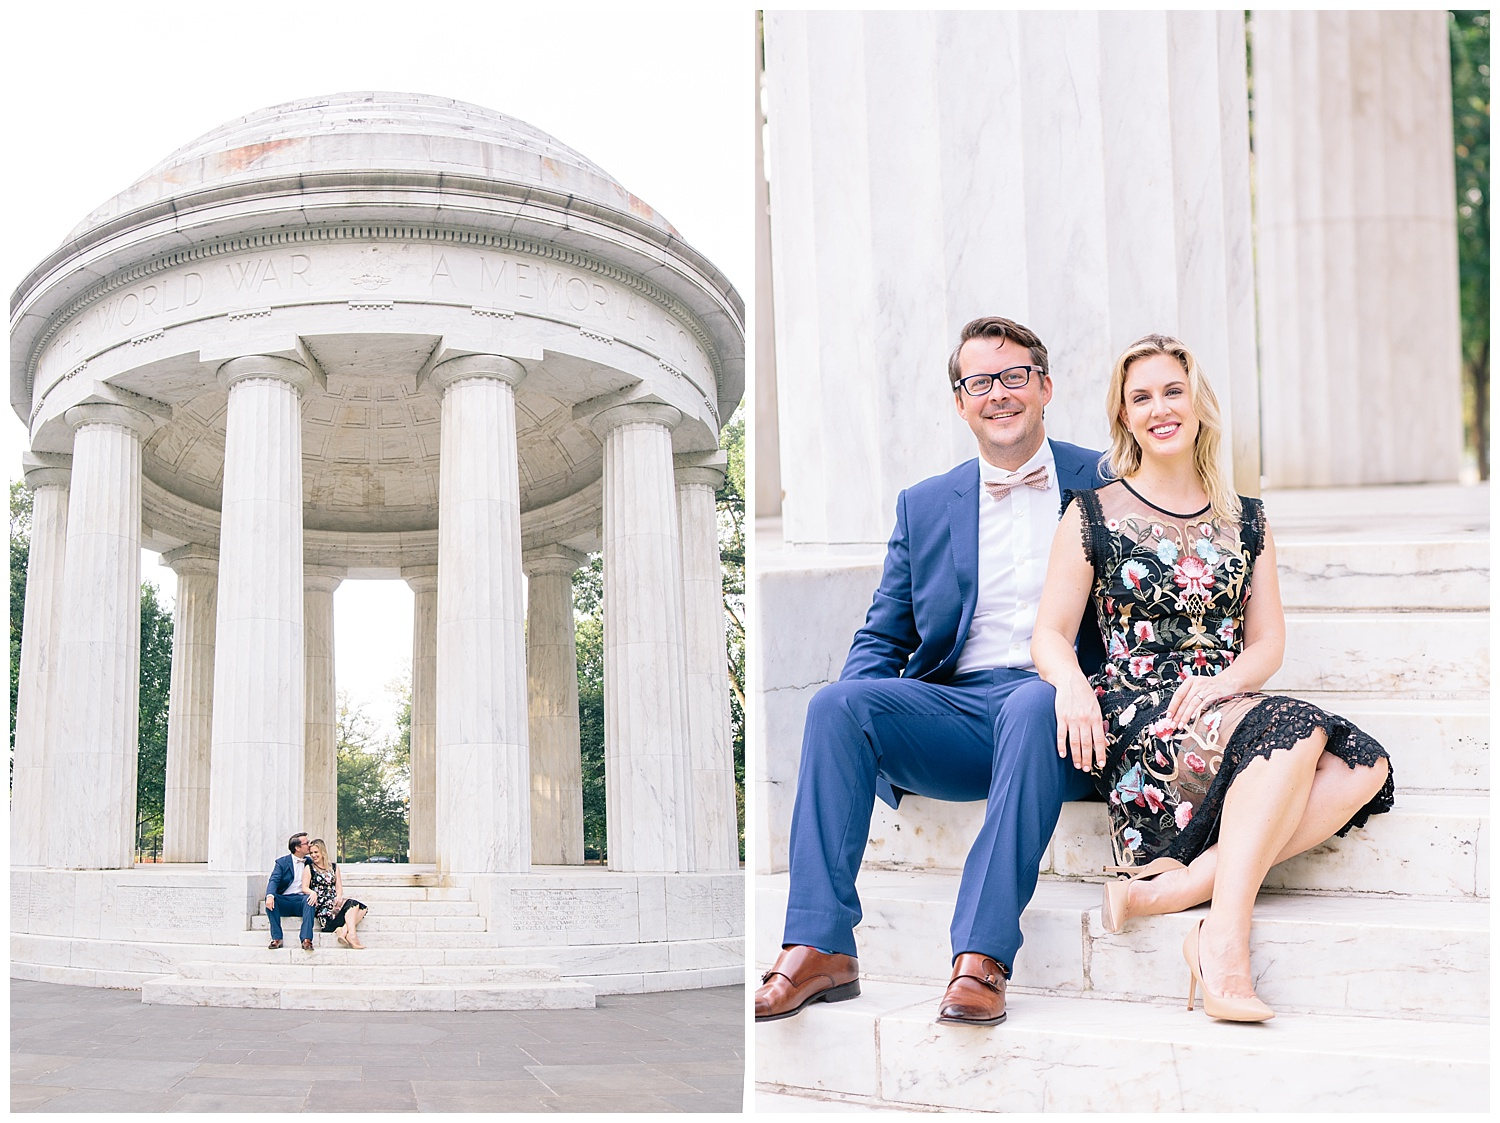 emily-belson-photography-washington-dc-engagement-emily-john-09.jpg